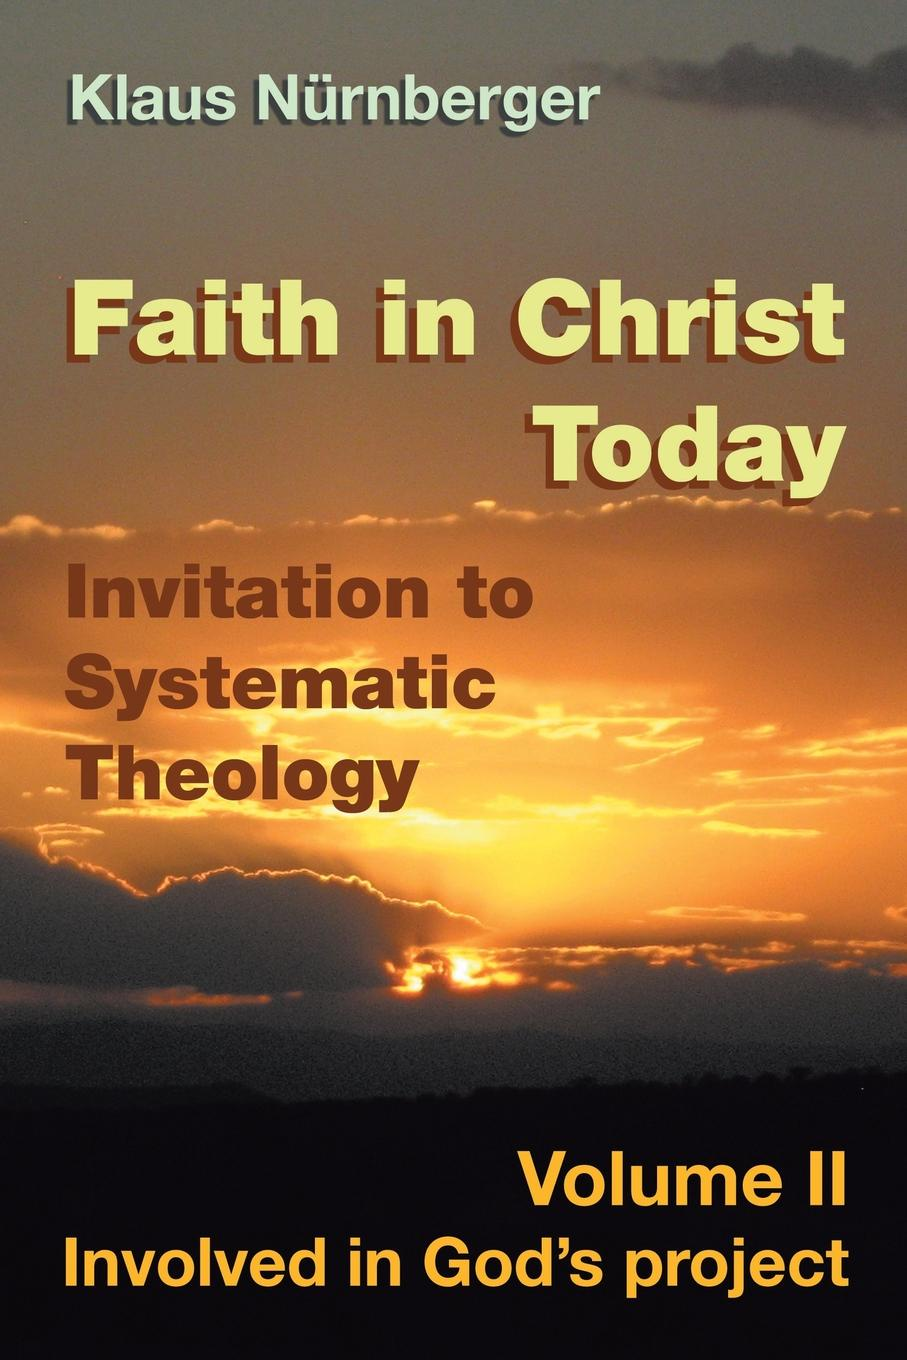 Klaus Nurnberger Faith in Christ today Invitation to Systematic Theology Volume II Involved in God's project